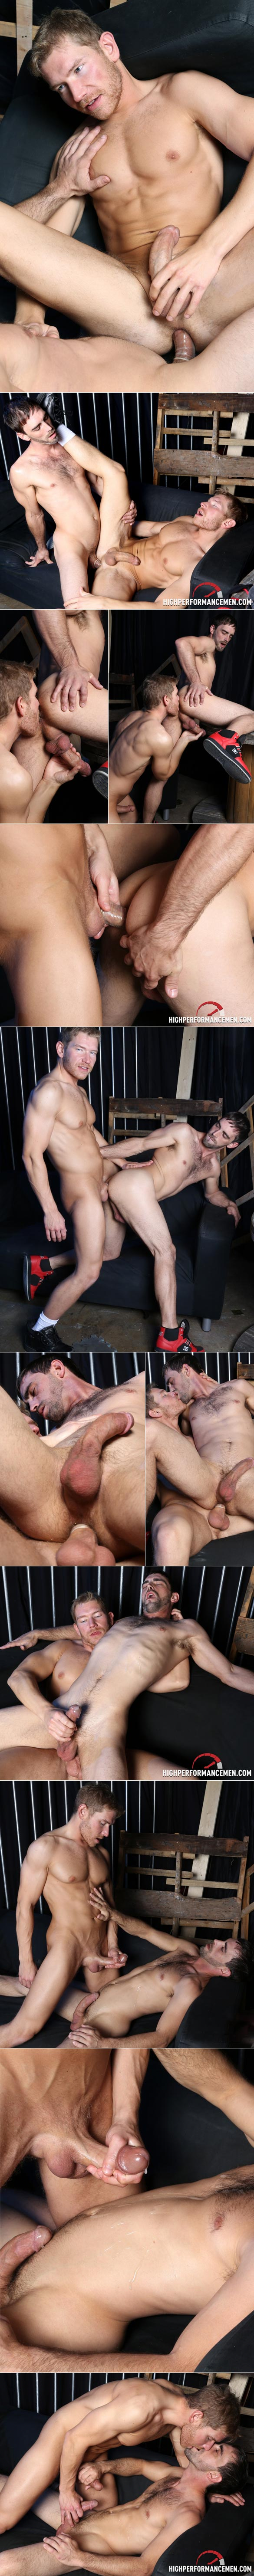 "HighPerformanceMen: Joe Parker and Alex Adams fuck each other in ""Bottoms Up!"""